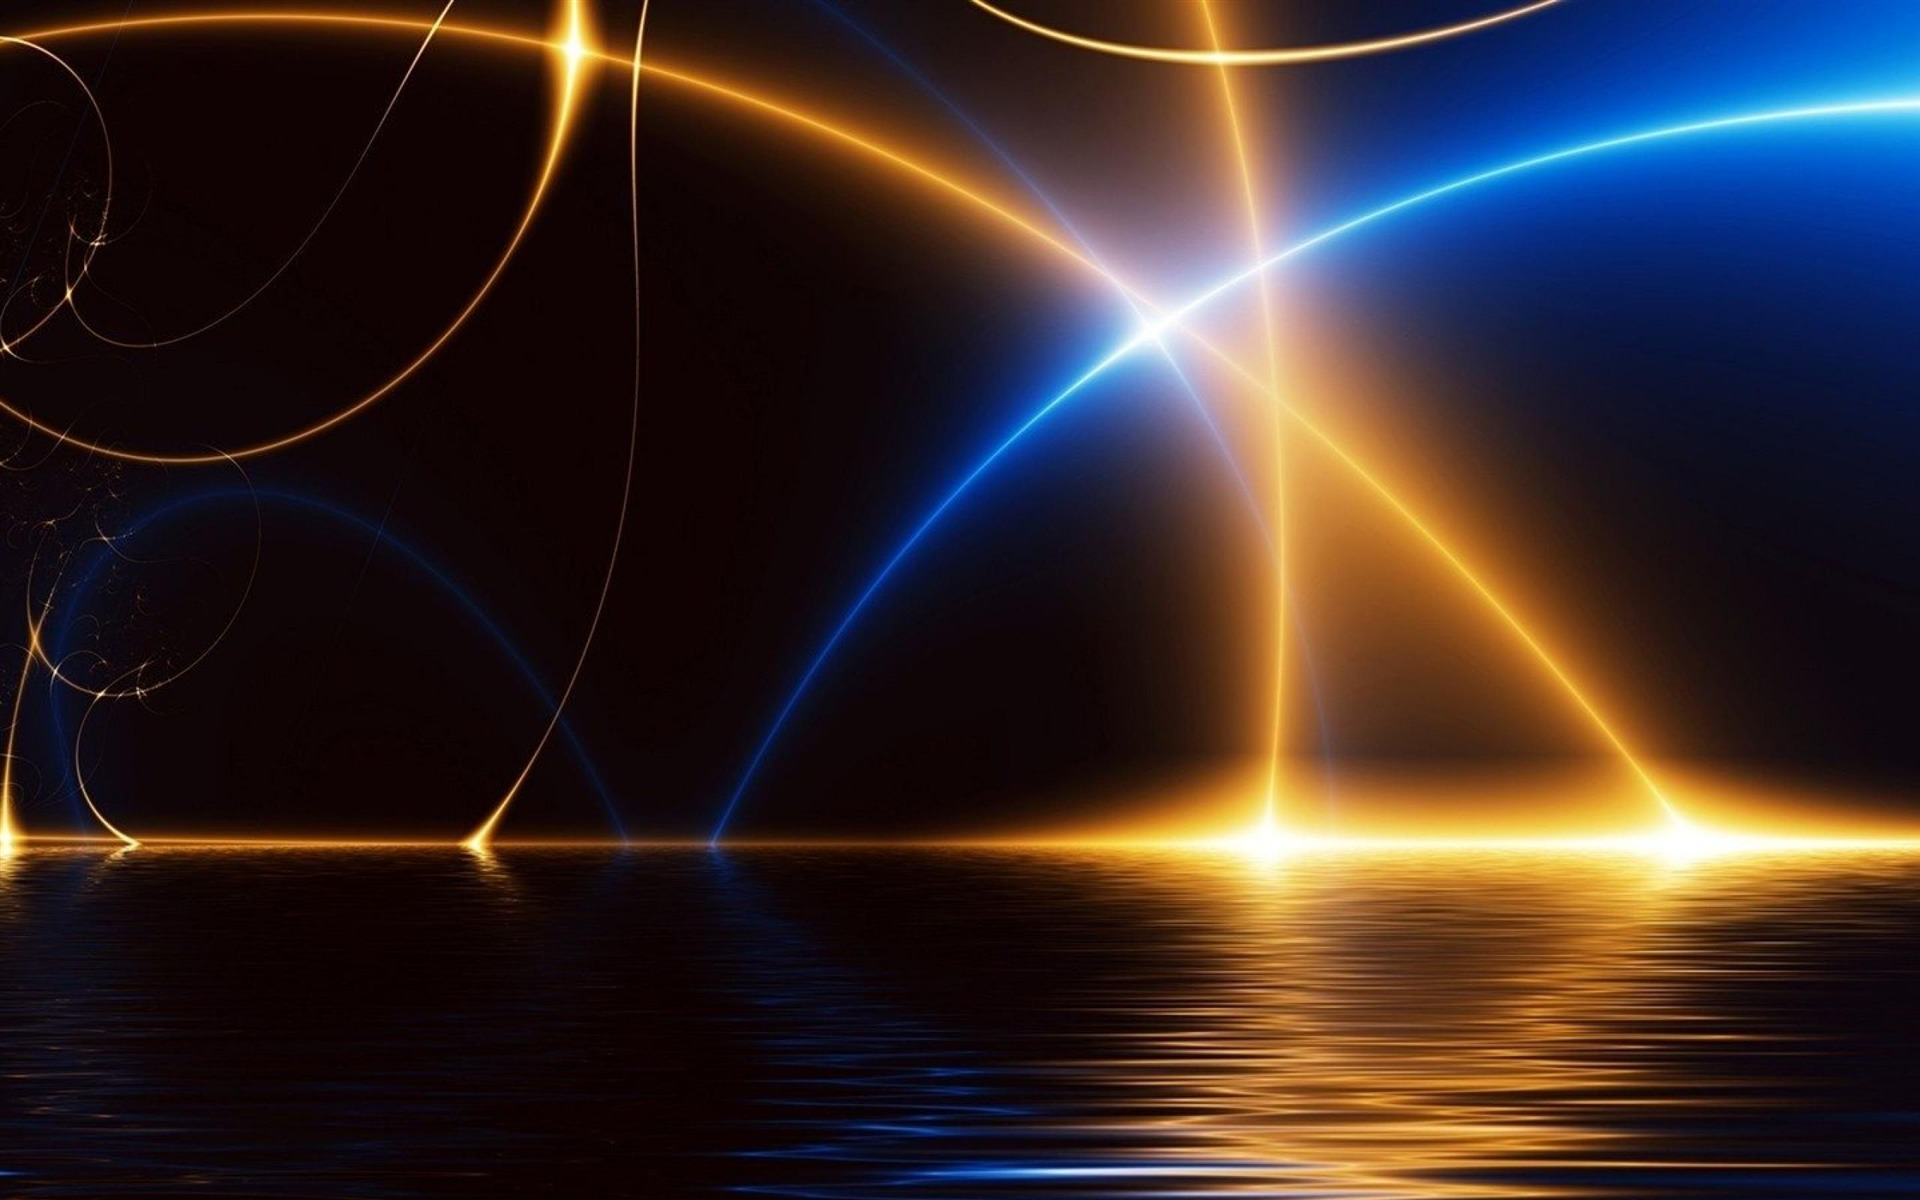 3d Wallpaper Theme For Android Light Background Abstract Design Wallpaper Preview